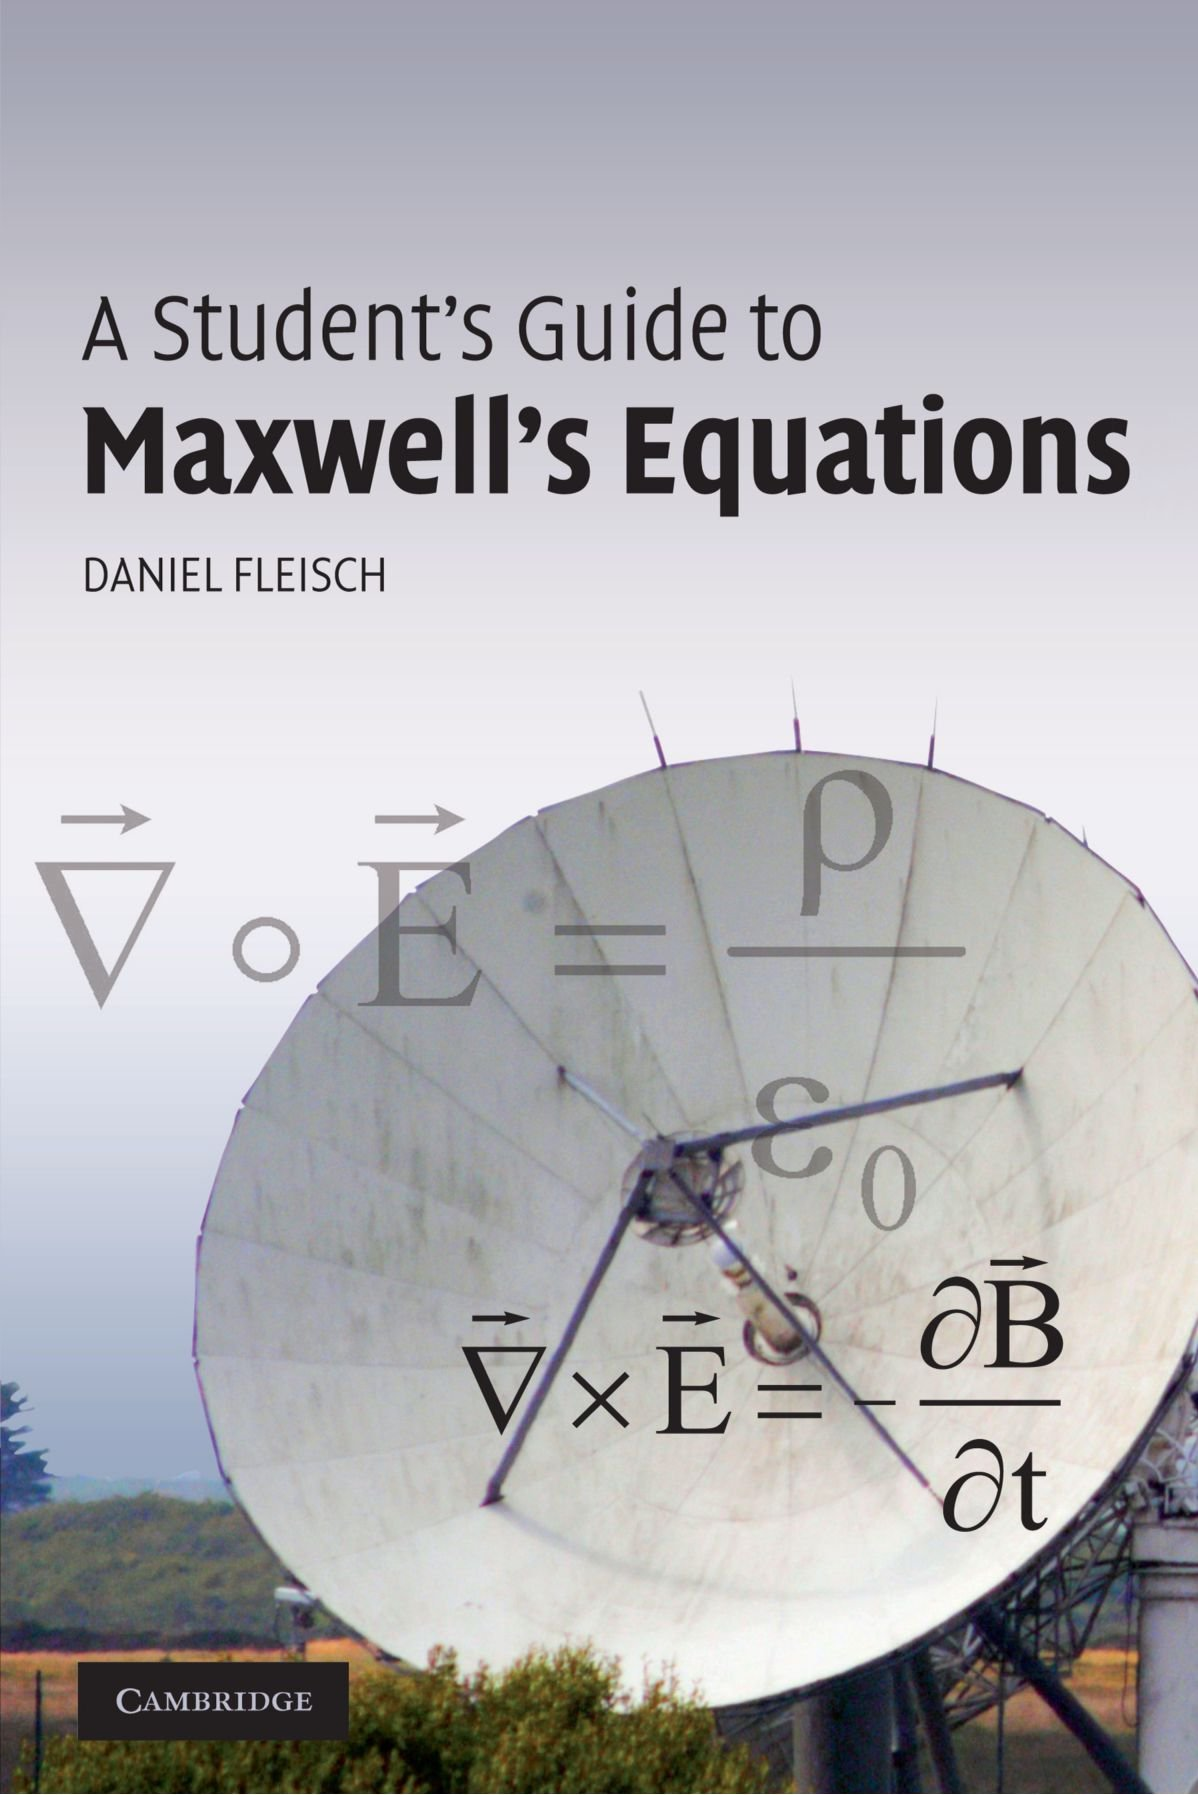 a student s guide to maxwell s equations student s guides amazon rh amazon co uk a student's guide to maxwell's equations pdf download a student's guide to maxwell's equations pdf free download